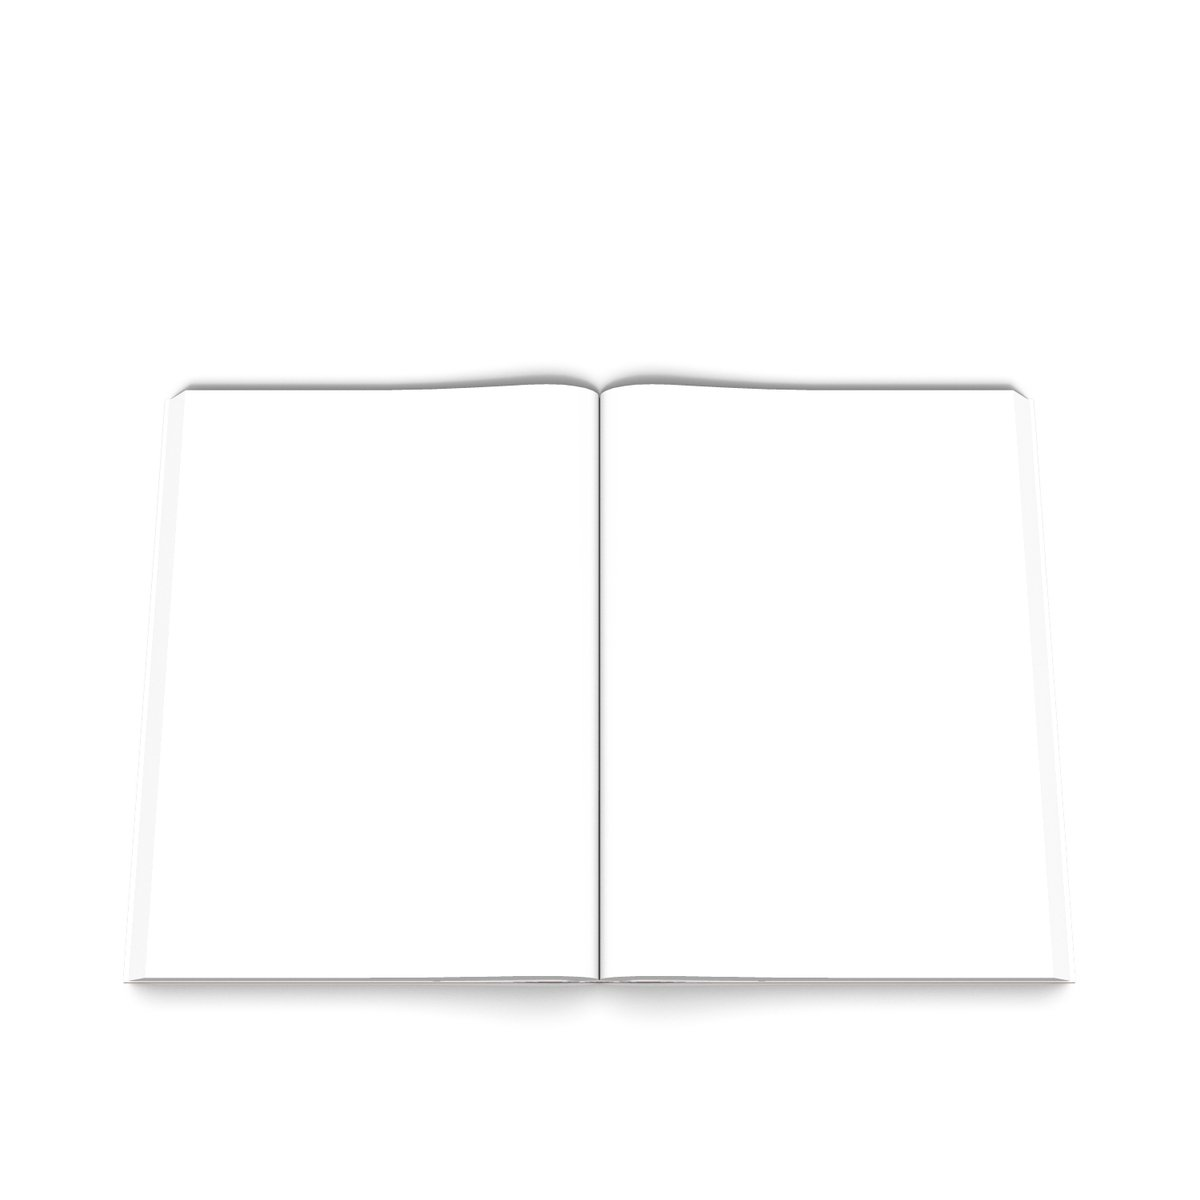 Free Blank Magazine Template 4 Stock Photo Freeimages